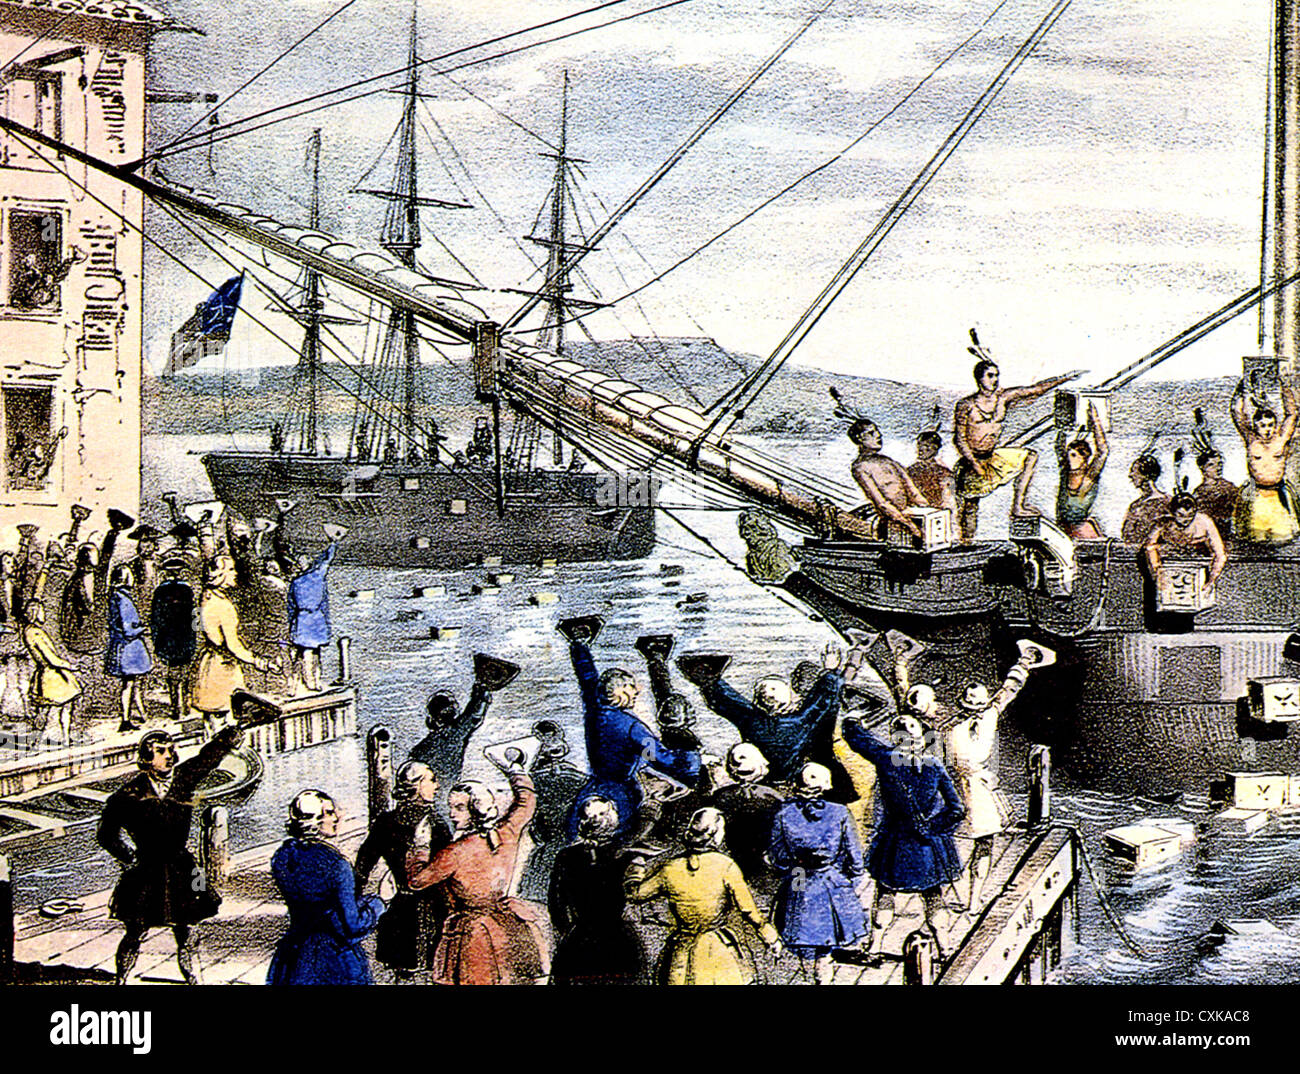 THE BOSTON TEA PARTY  An 1846 lithograph by Nathaniel Currier of the events on 16 December 1773 - Stock Image